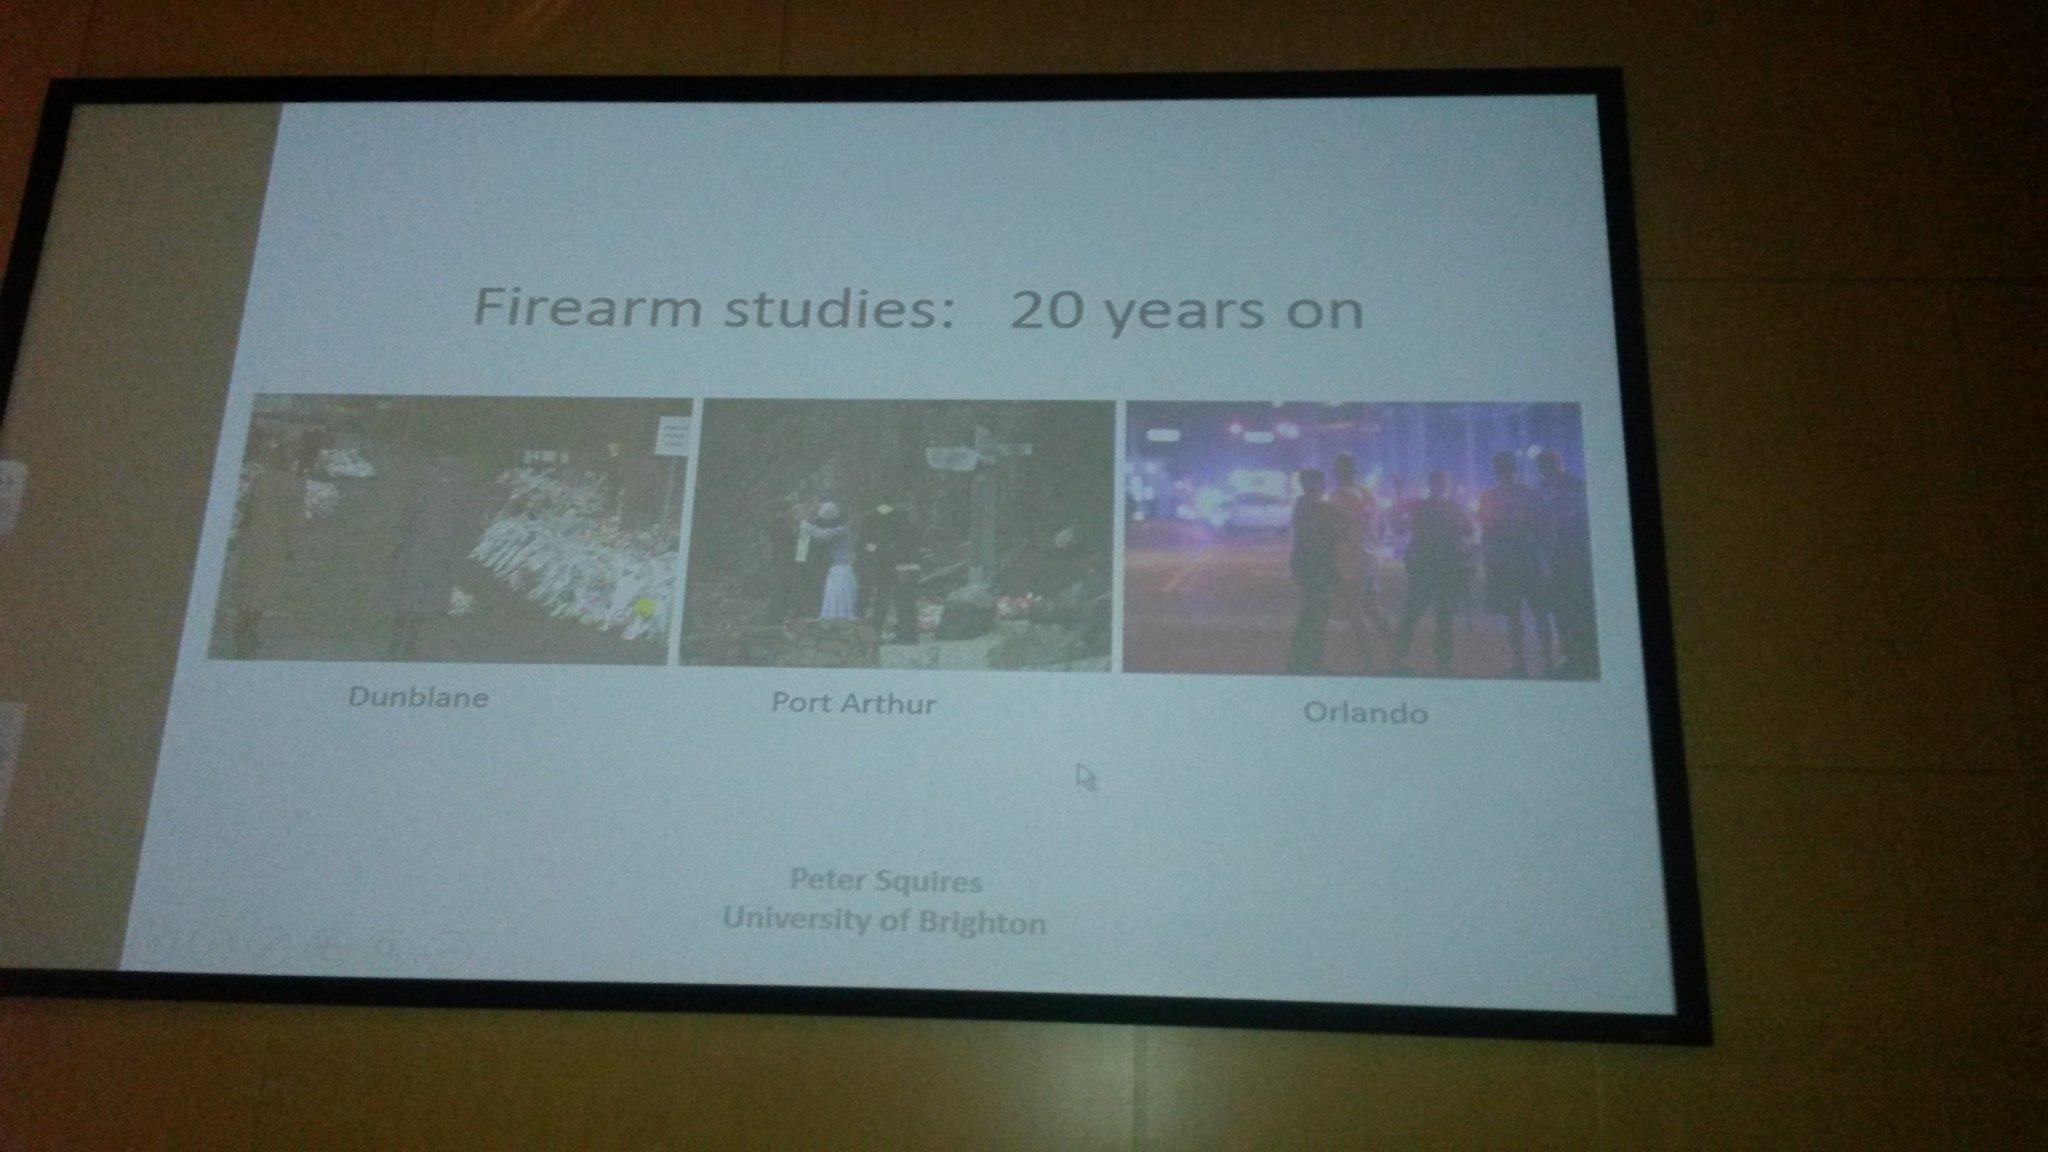 Panel on firearm studies with @PSqCriminology @ #BSCConf16, USA news this morning confirm how needed they are... https://t.co/zKwafVNBbl